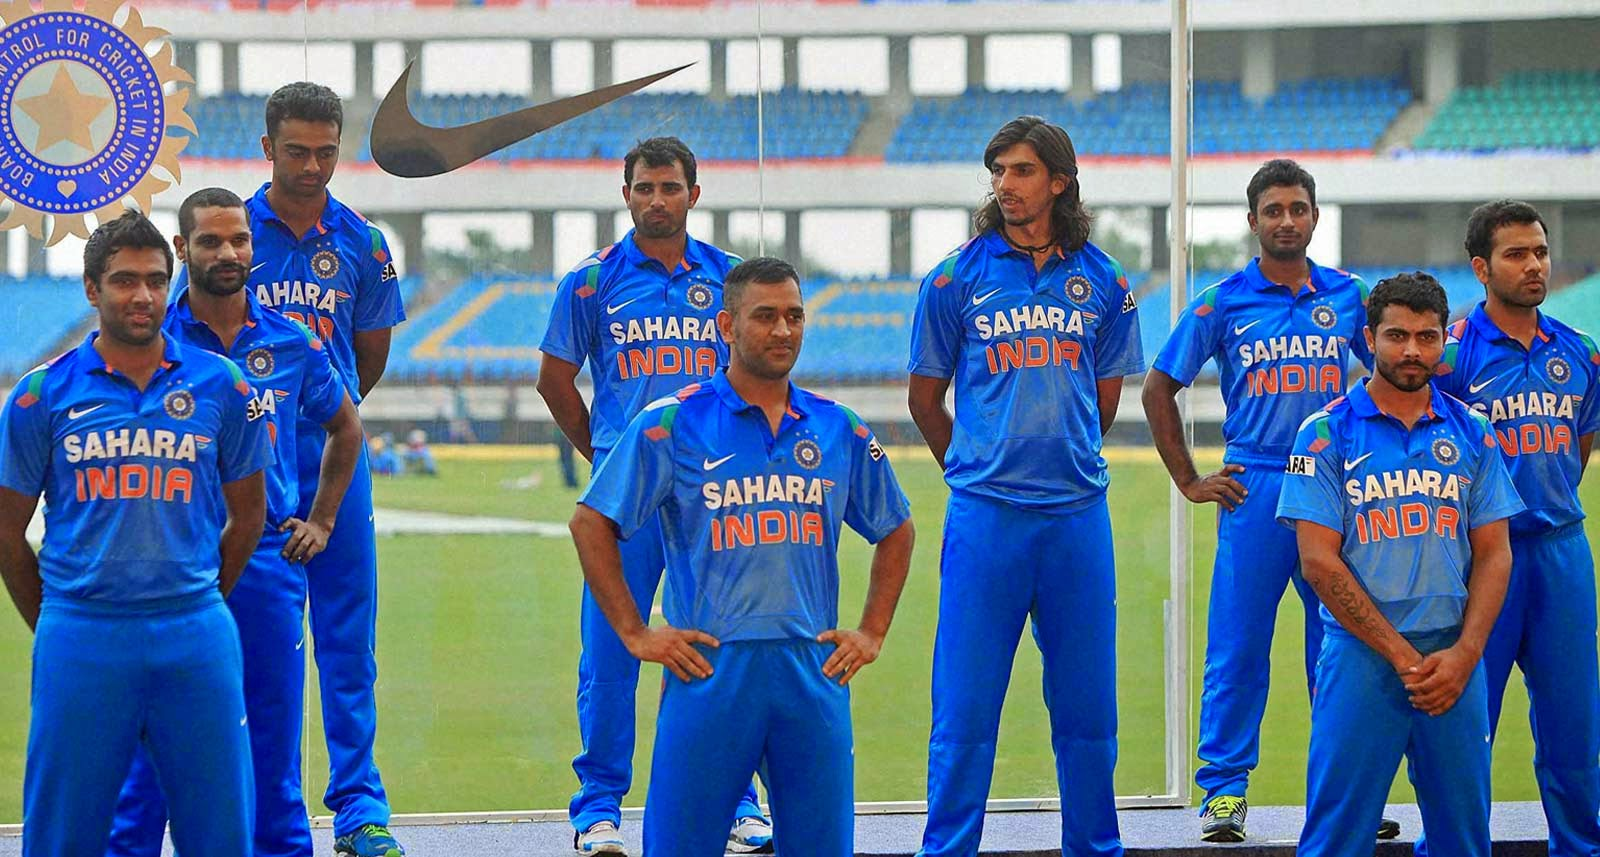 Indian Cricket Hd Wallpapers: Indian Cricket Team Wallpapers 2014